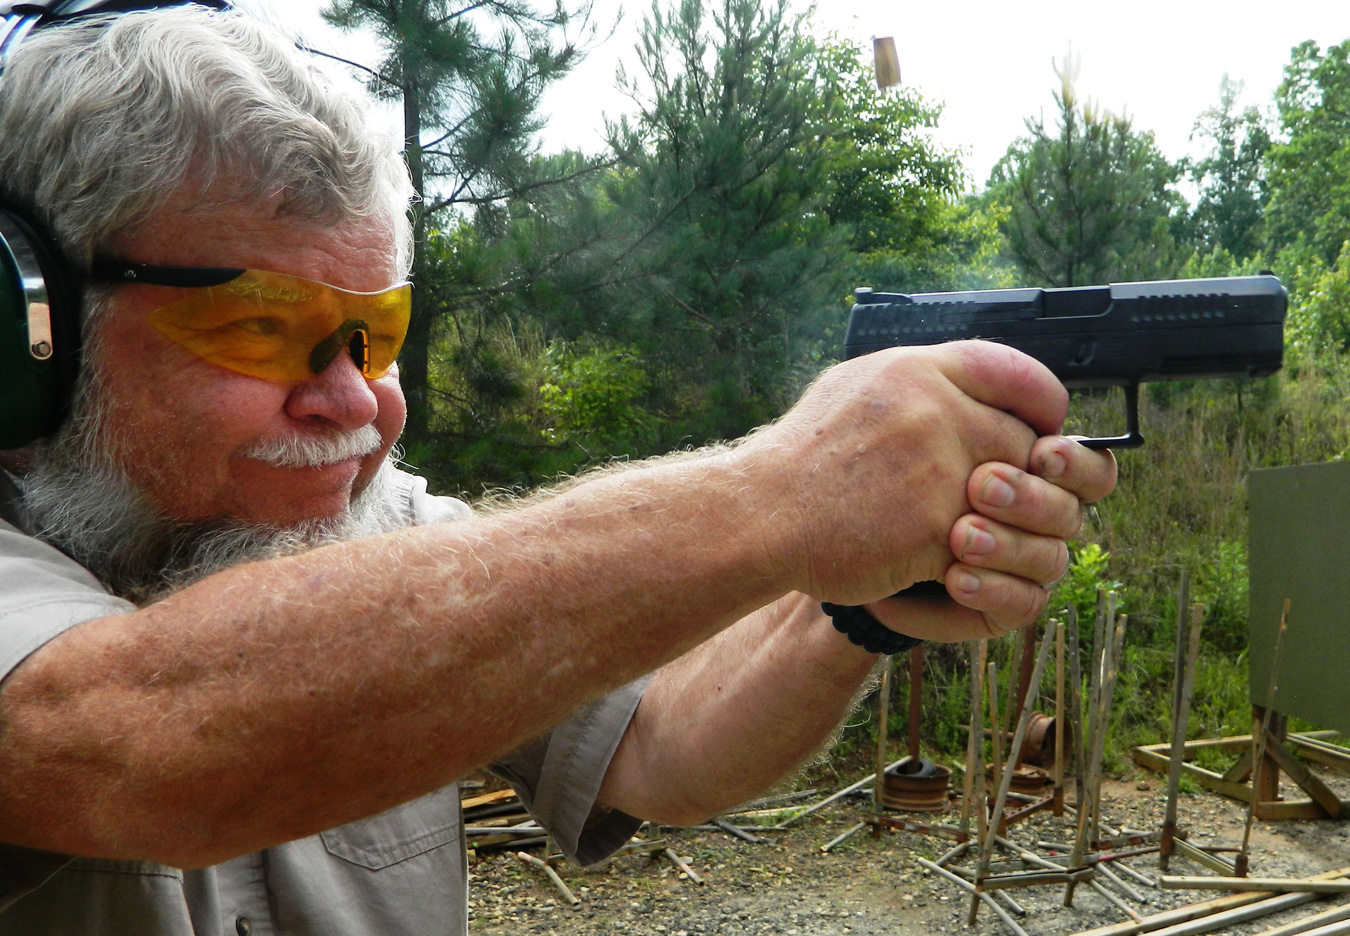 Bob Campbell shooting the CZ P10-C 9mm pistol